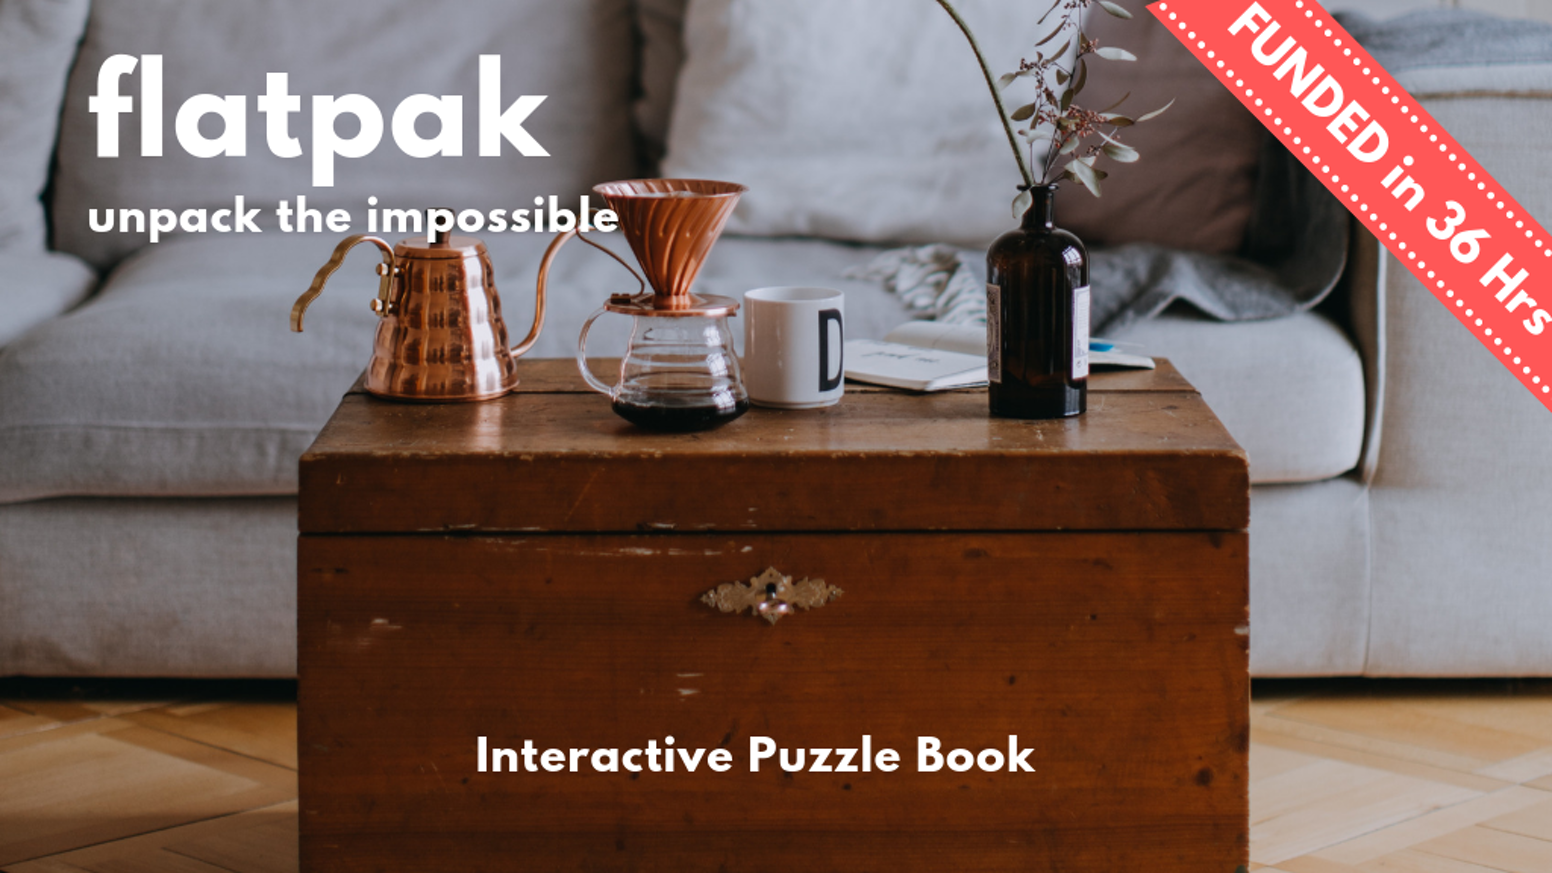 A full-colour glossy interactive puzzle book, in the guise of a popular Scandinavian furniture store catalogue, Flatpak.